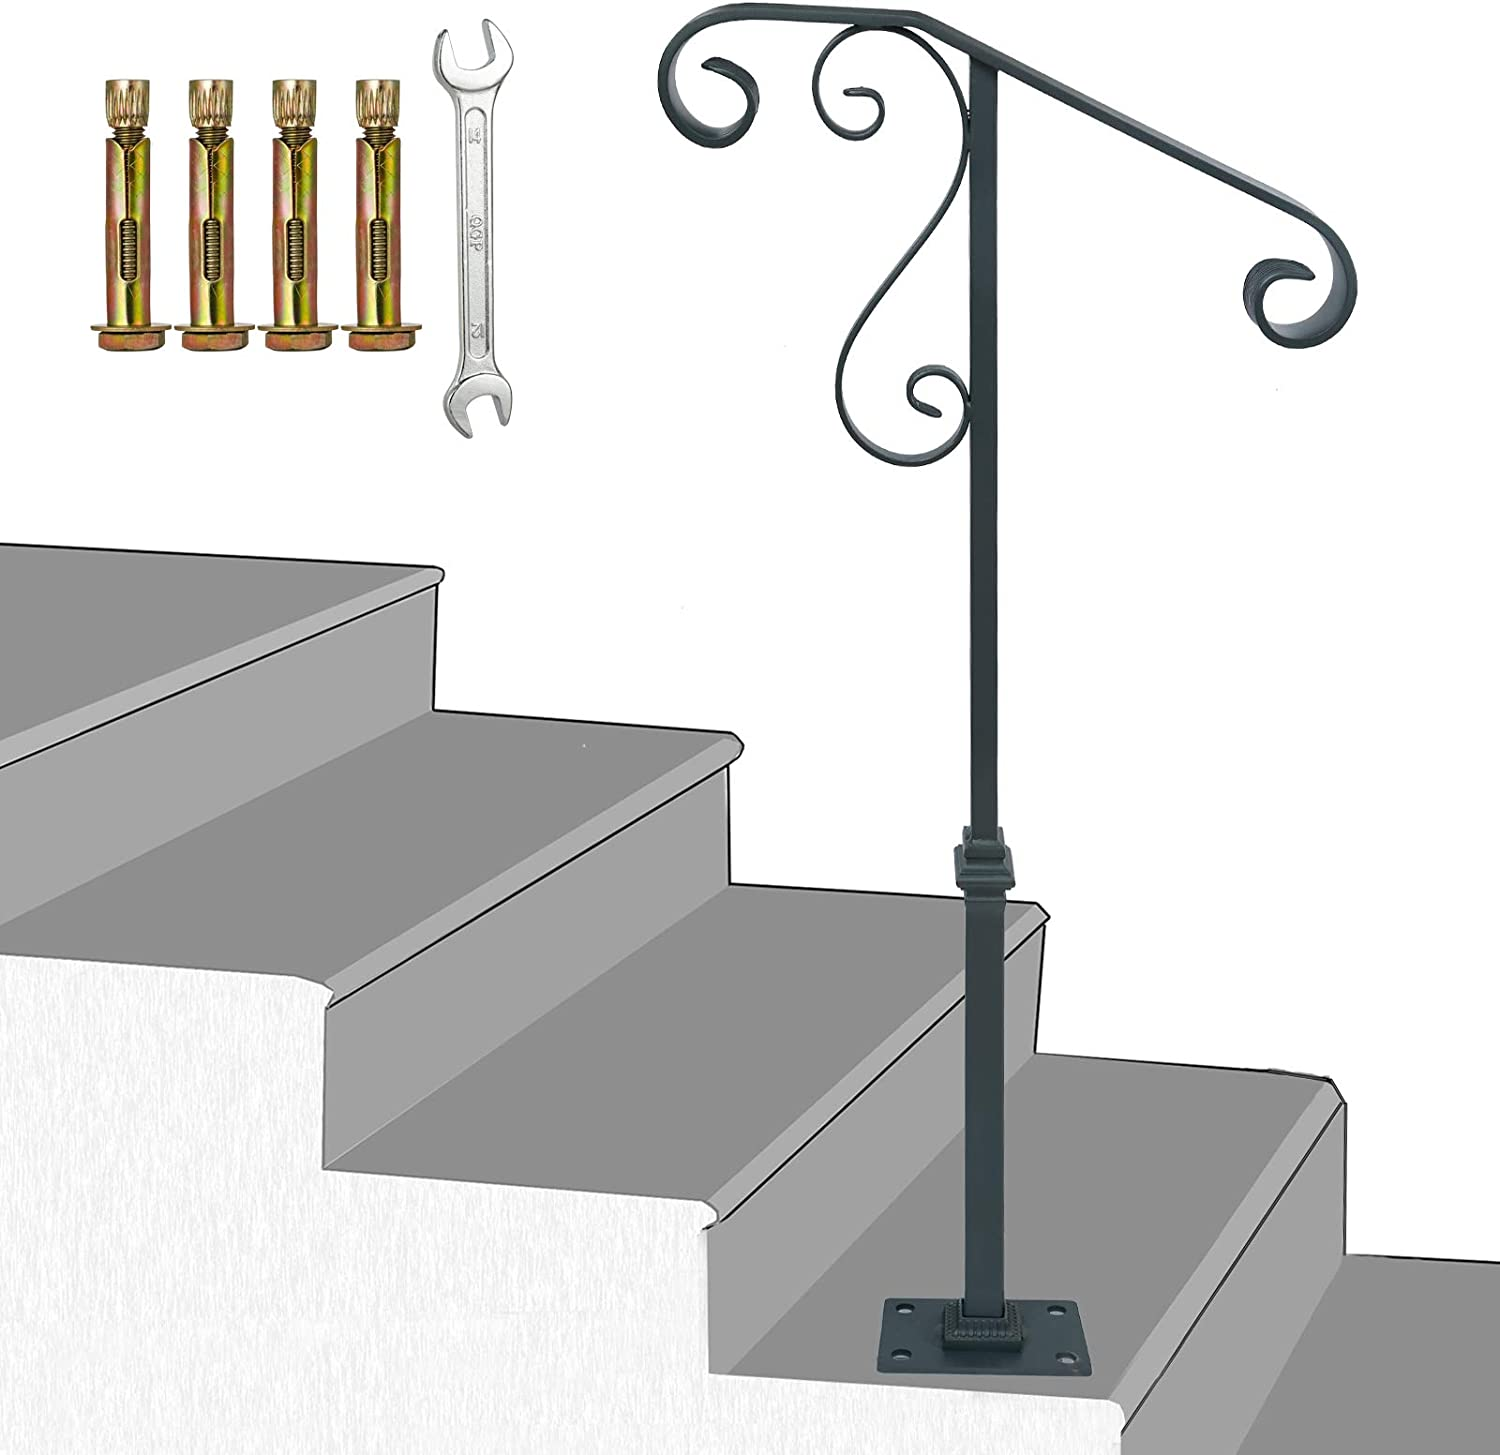 Handrail Railing,Single Post Sturdy Hand Railing with Base Wrought Iron Grab Supports Fits 1 or 2 Steps Grab Rail for Steps Porch,Gray